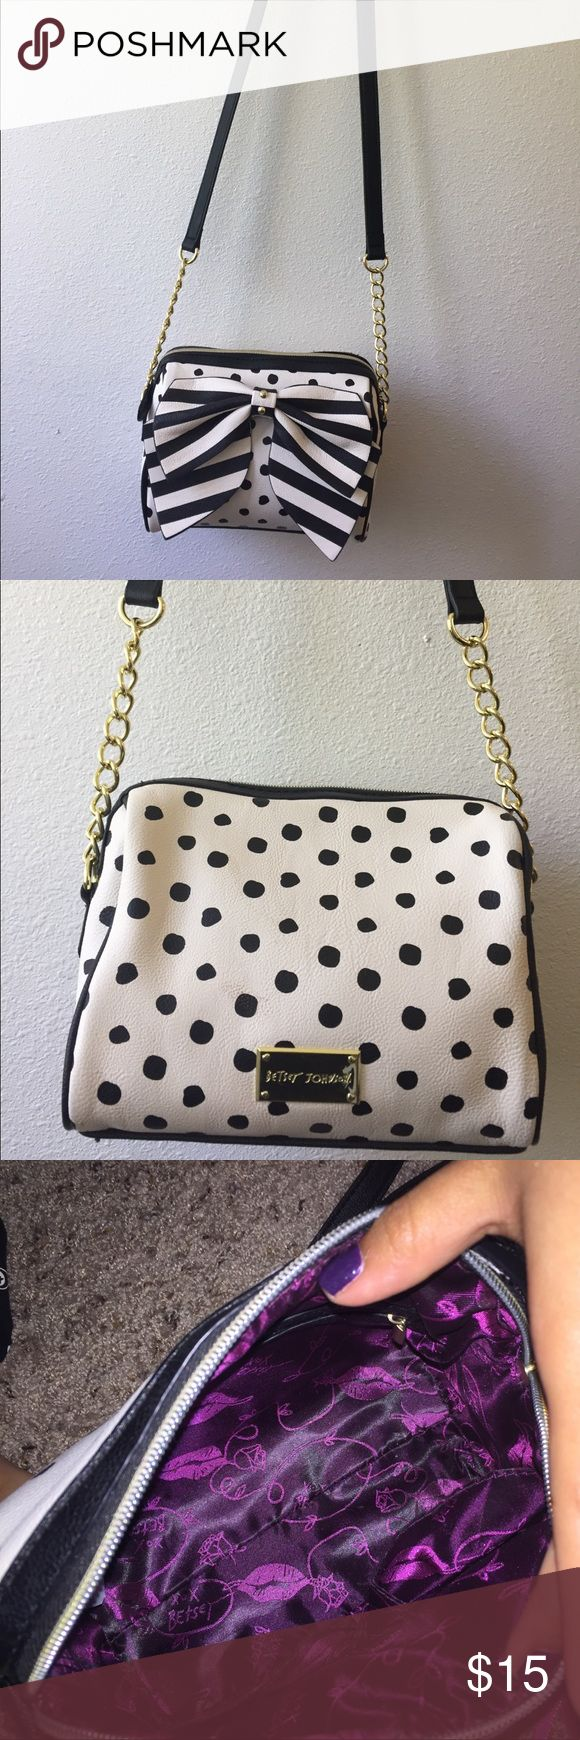 Betsey Johnson black and white purse This is a super fun/cute purse! I'm getting rid of it because I have too many purses! It's in very good condition and there is no rips or tears:) feel free to make offers! Betsey Johnson Bags Crossbody Bags